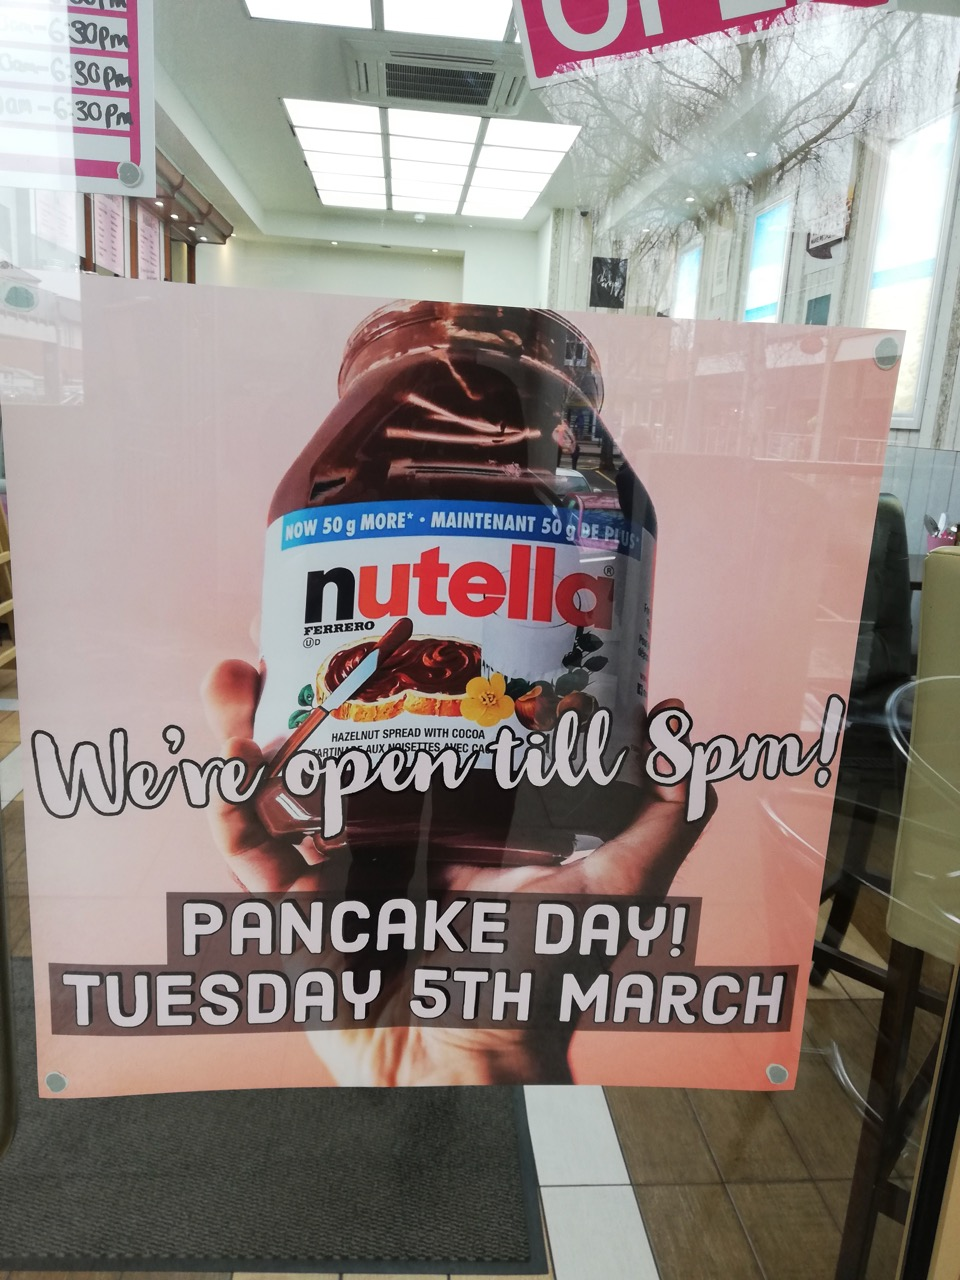 Great news! Which shop is this will open late on Pancake Day?